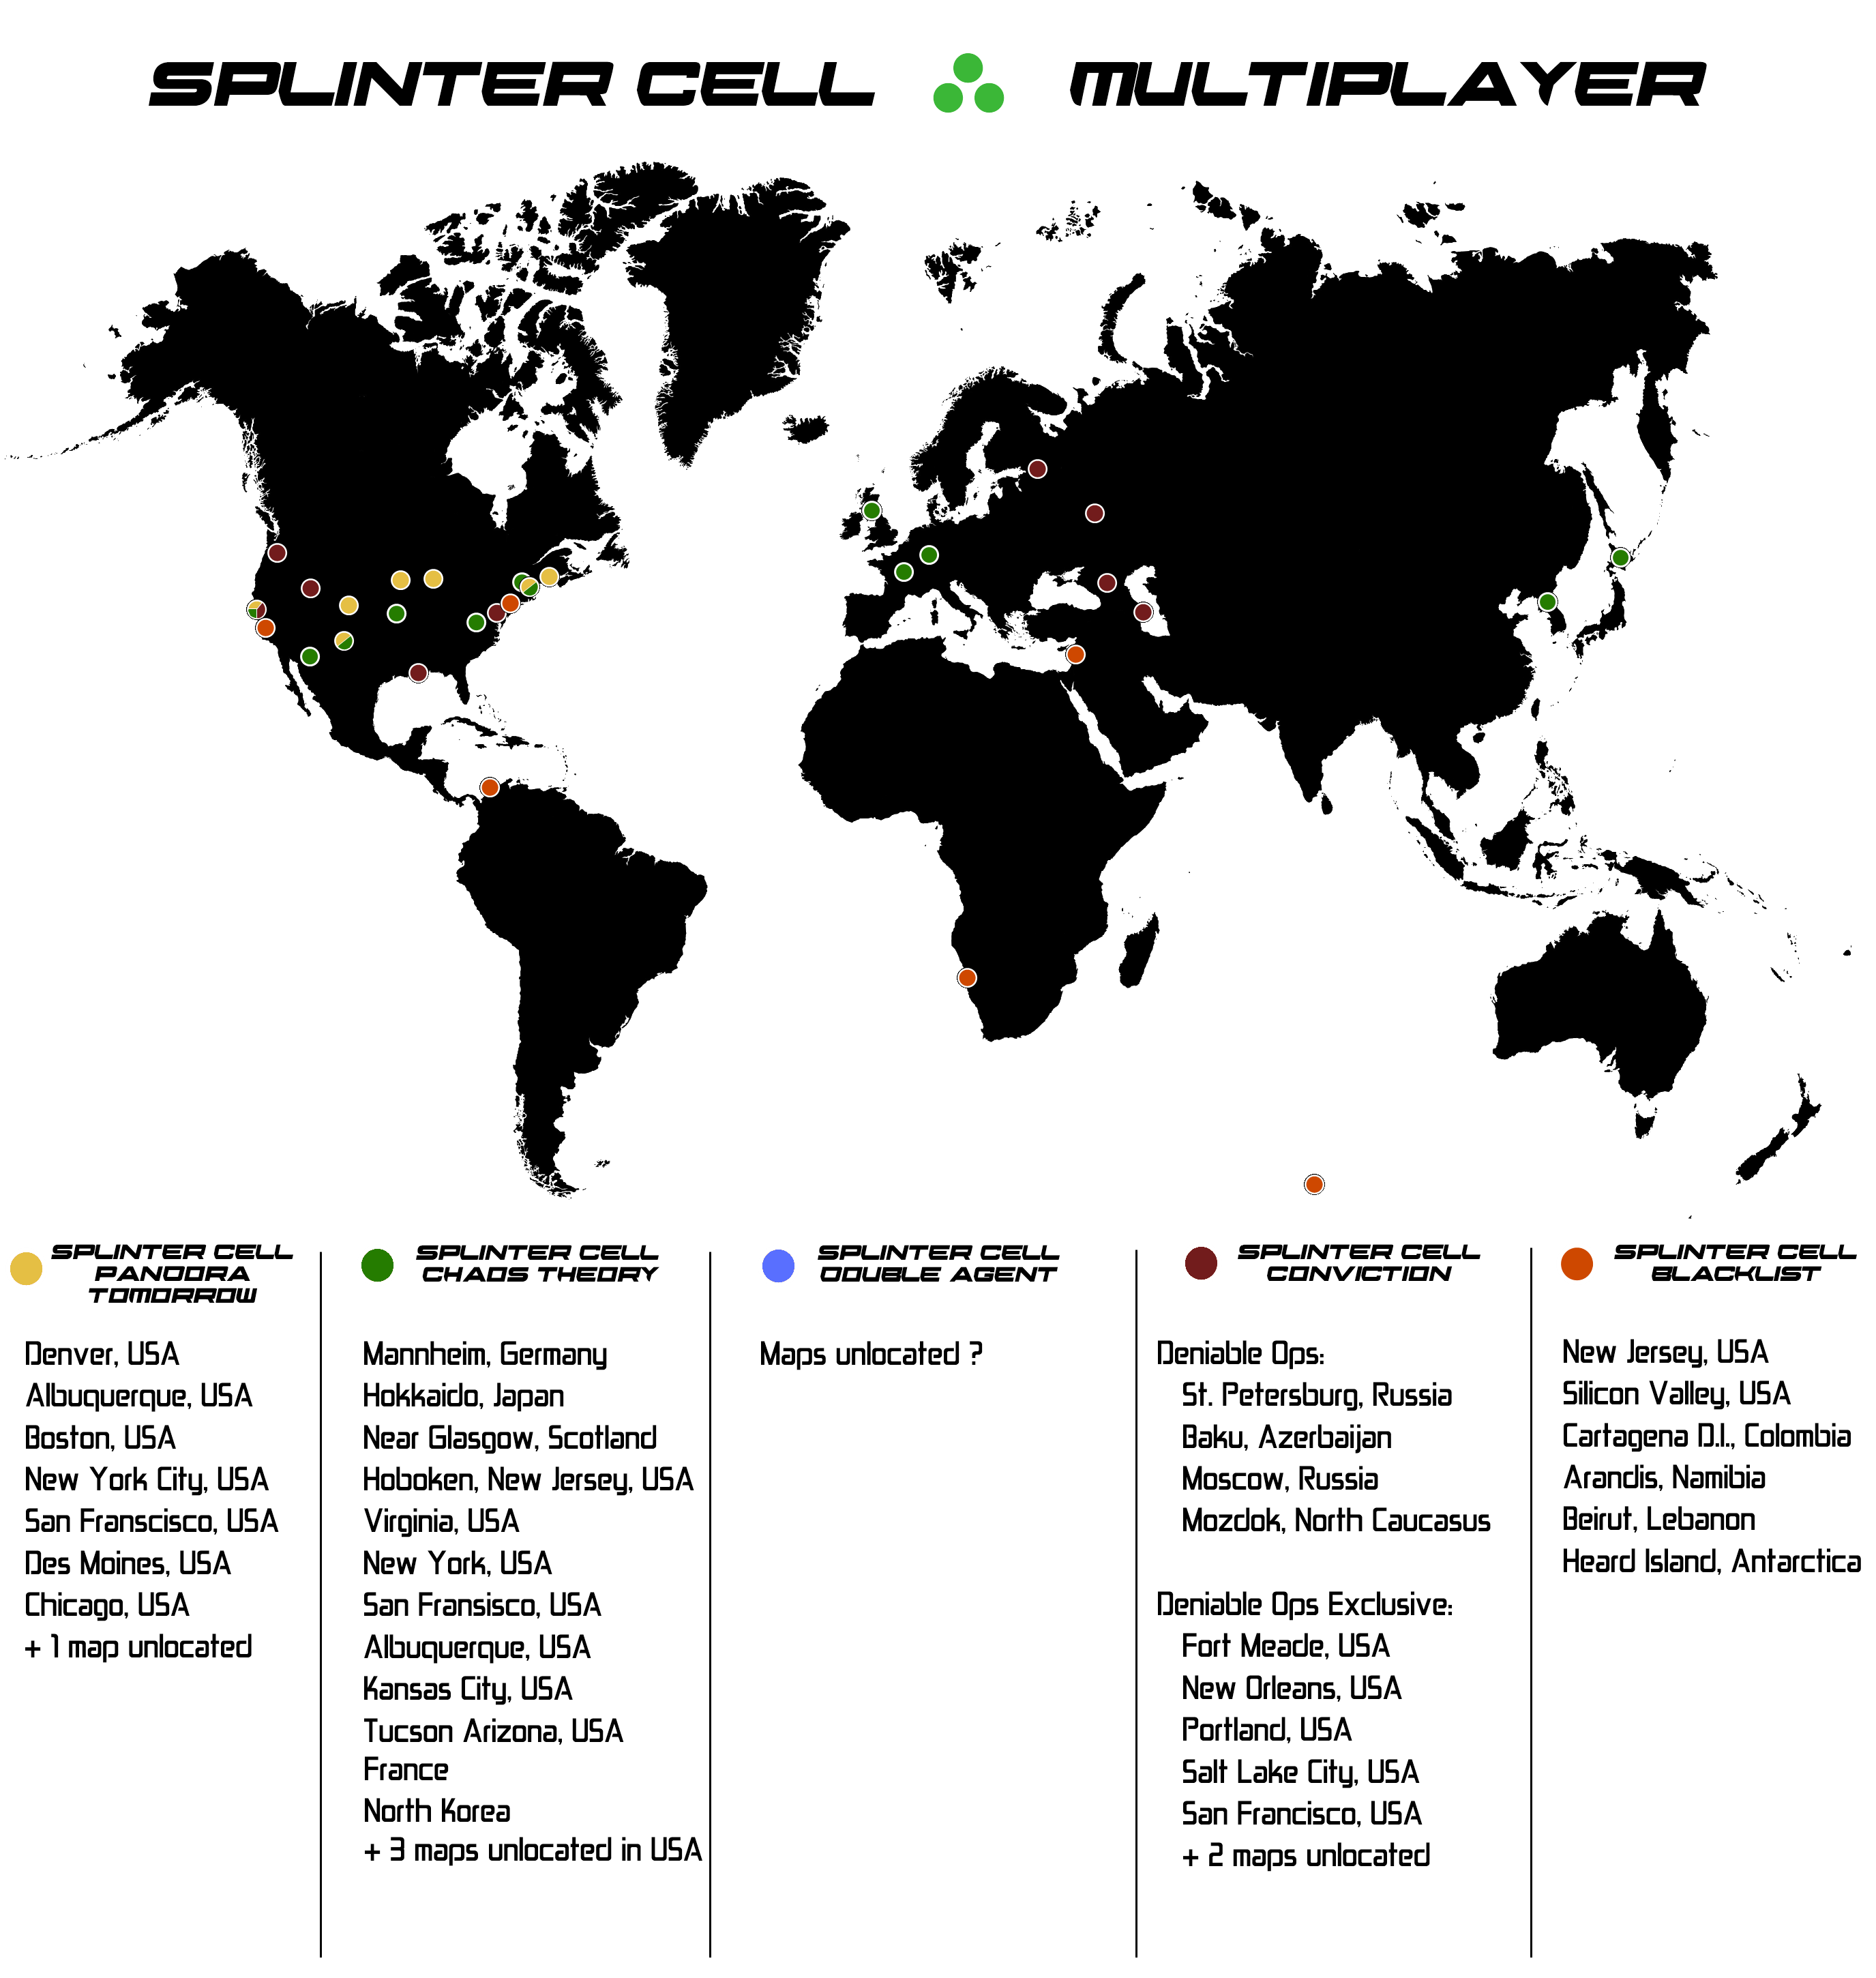 Splinter Cell World Maps Locations Of All Missions